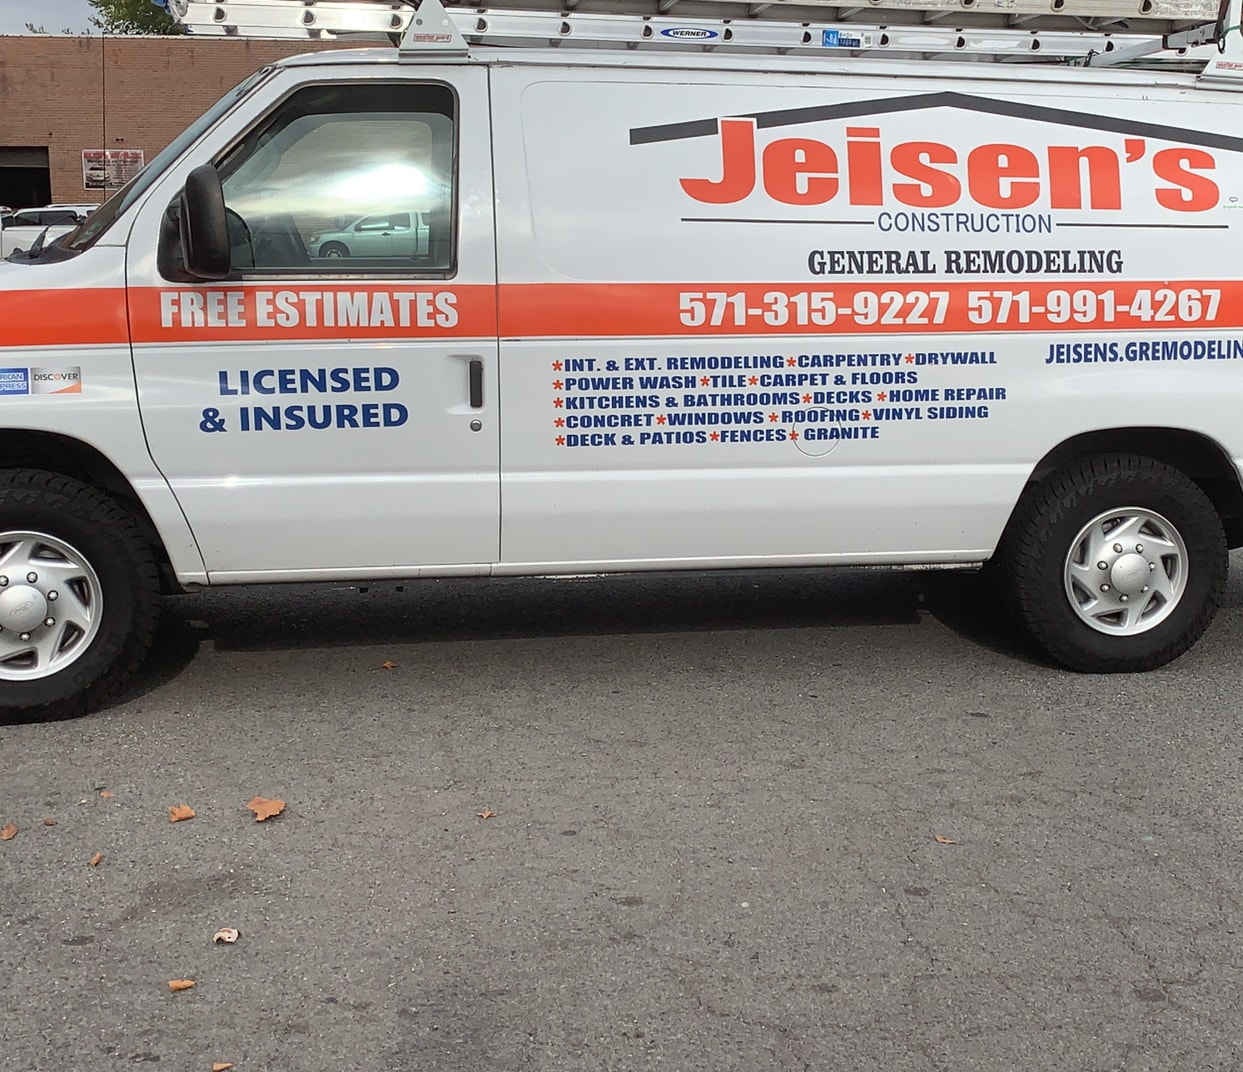 Jeisen's Construction General Remodeling LLC